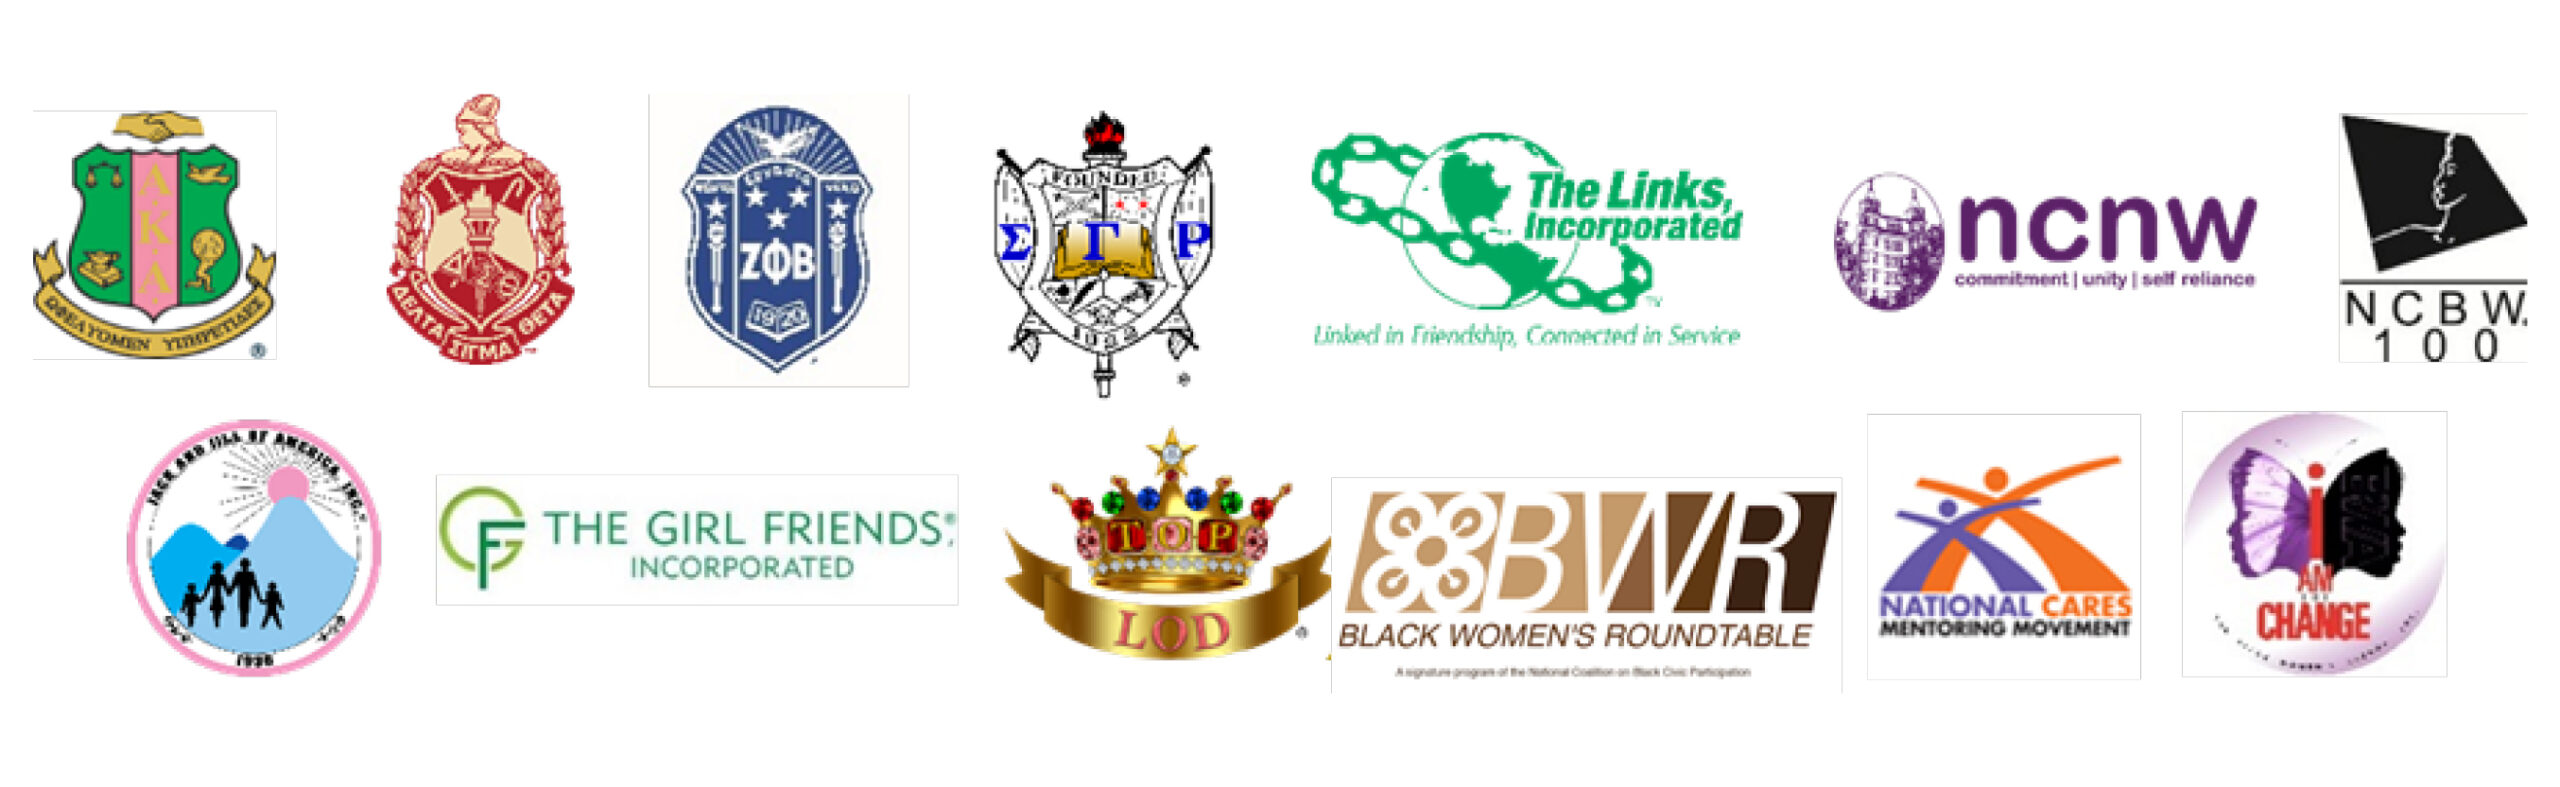 SistersUnited4Reform Issues an Open Letter to Senator Kamala Harris The Largest Coalition of Members from Historic African American Women's Organizations